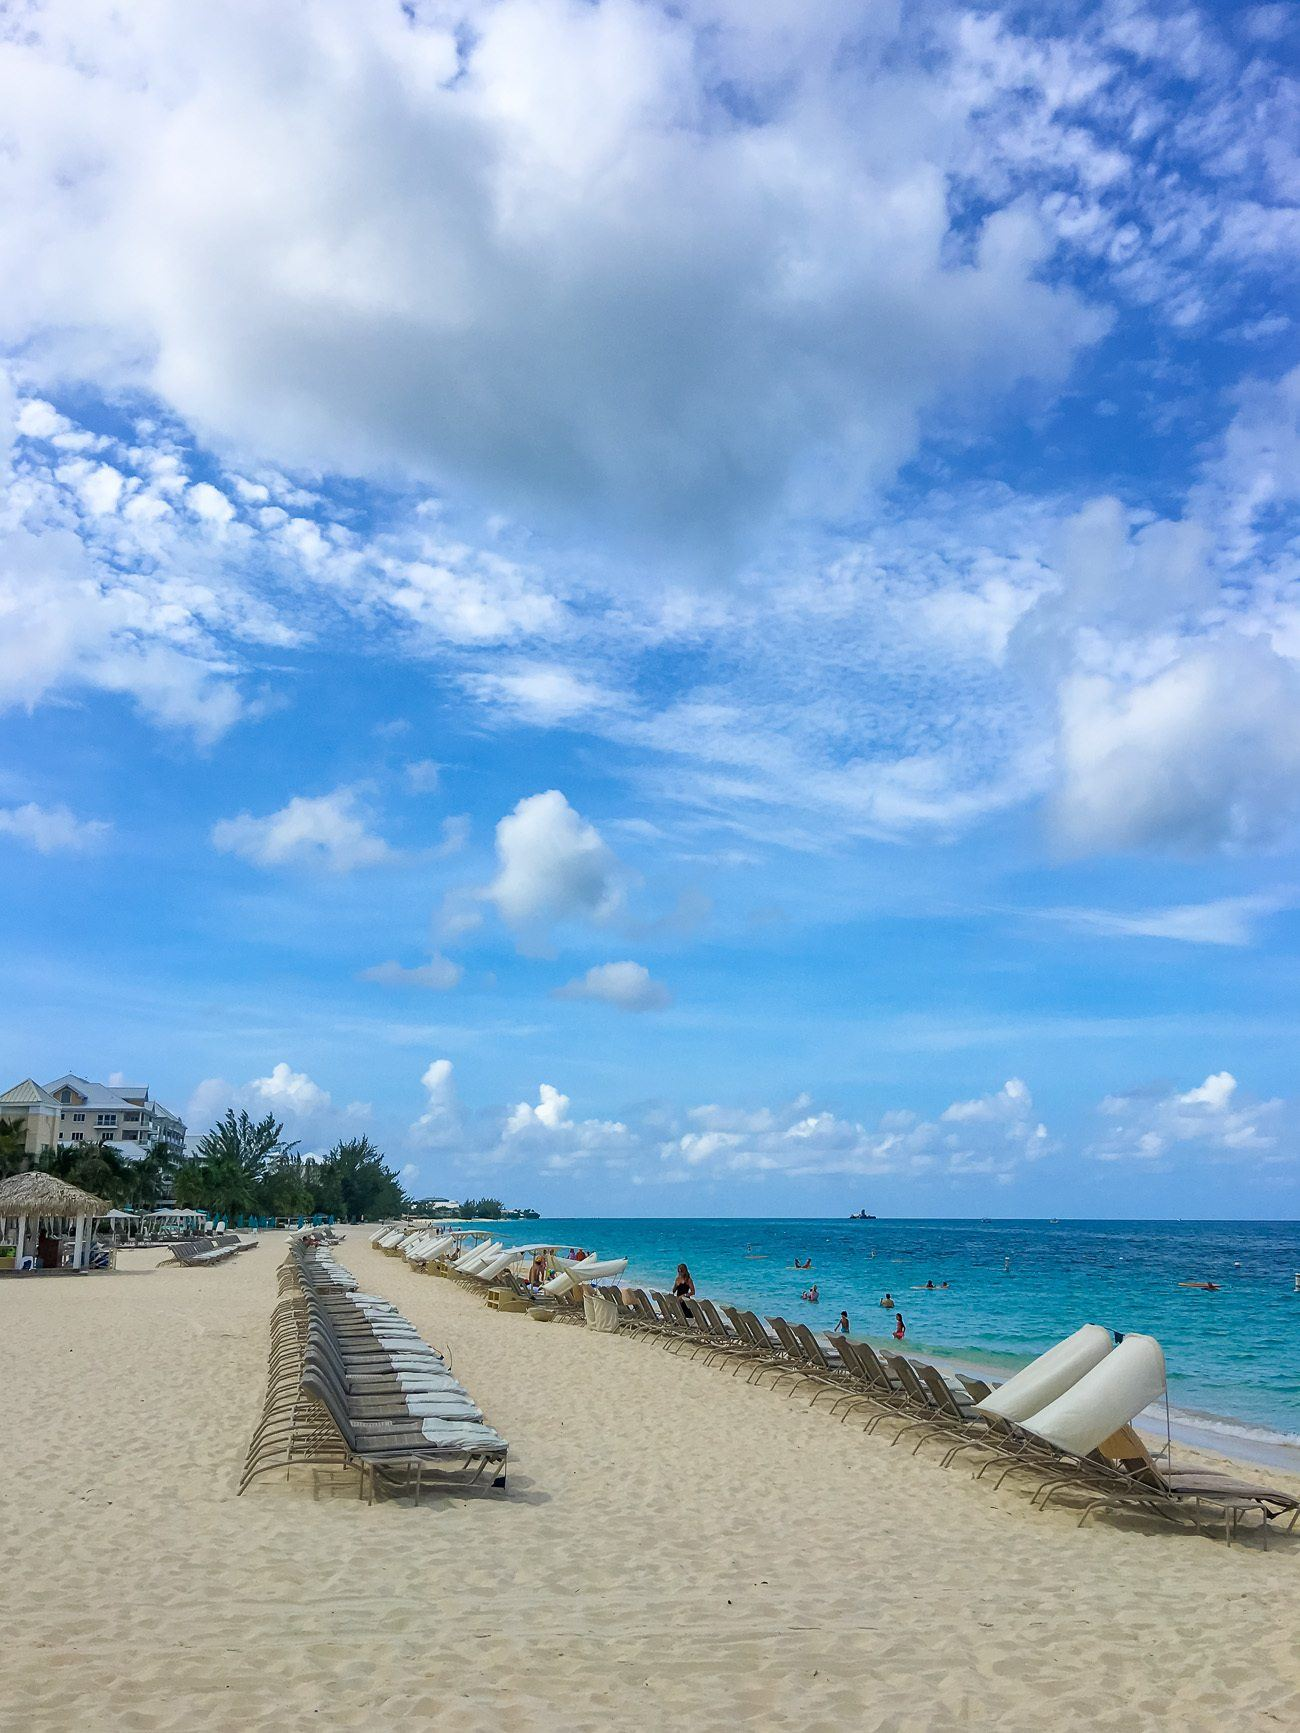 The Ritz-Carlton, Grand Cayman is a luxury resort located on beautiful Seven Mile Beach.